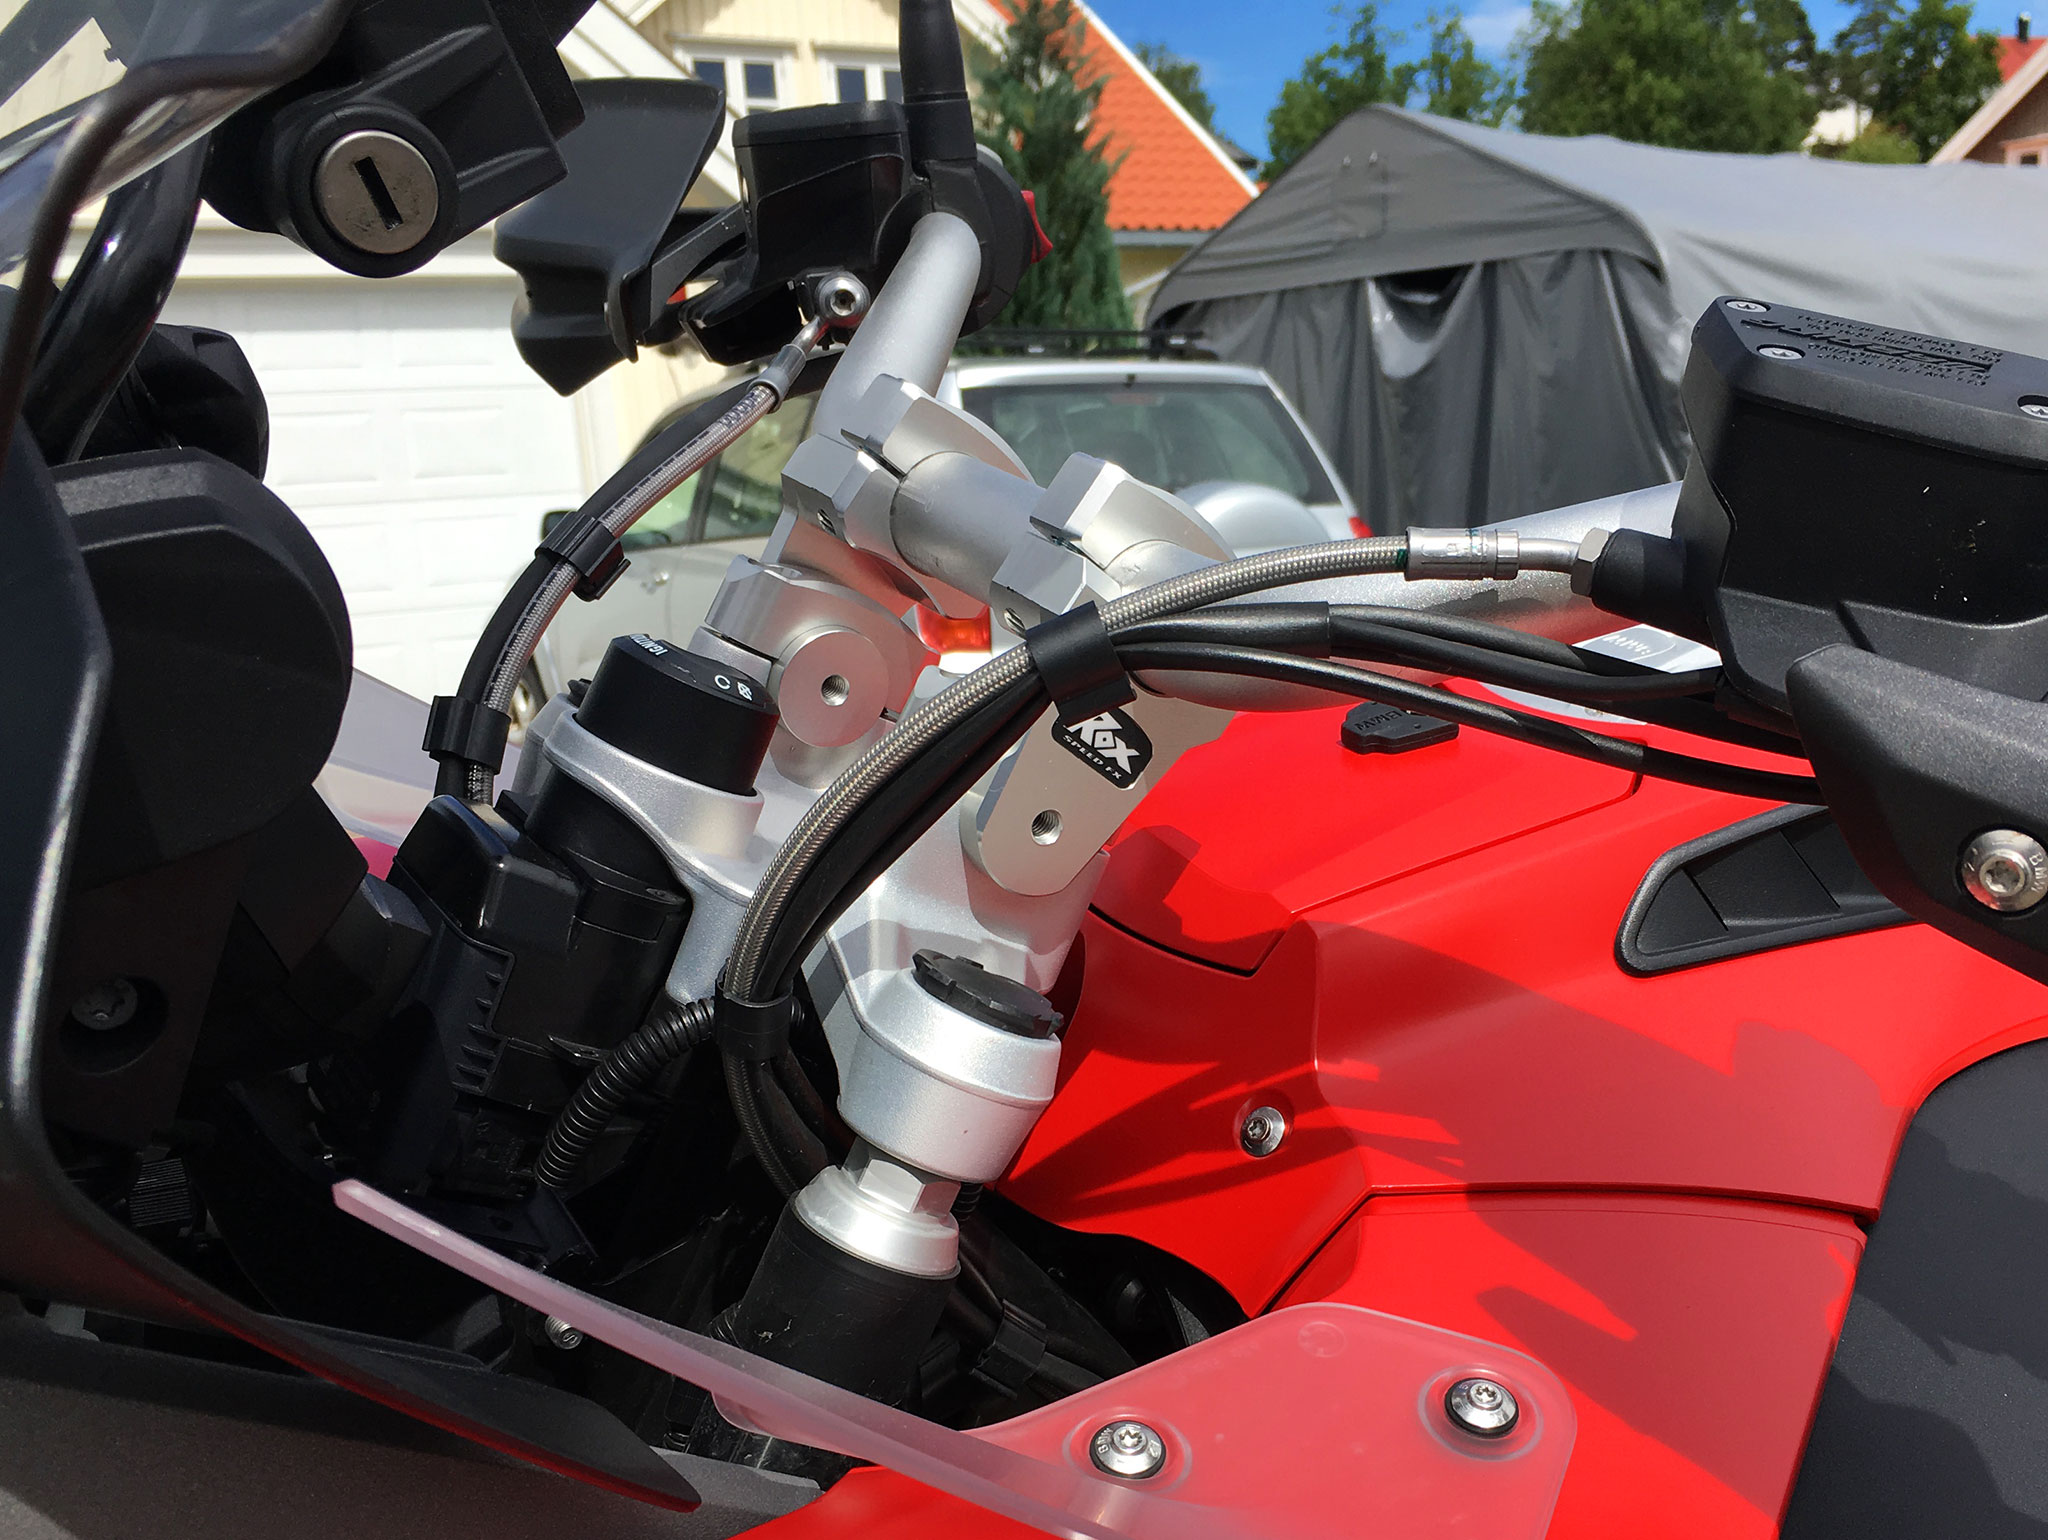 Rox Risers fitted on the BWM R1200GS Adventure LC